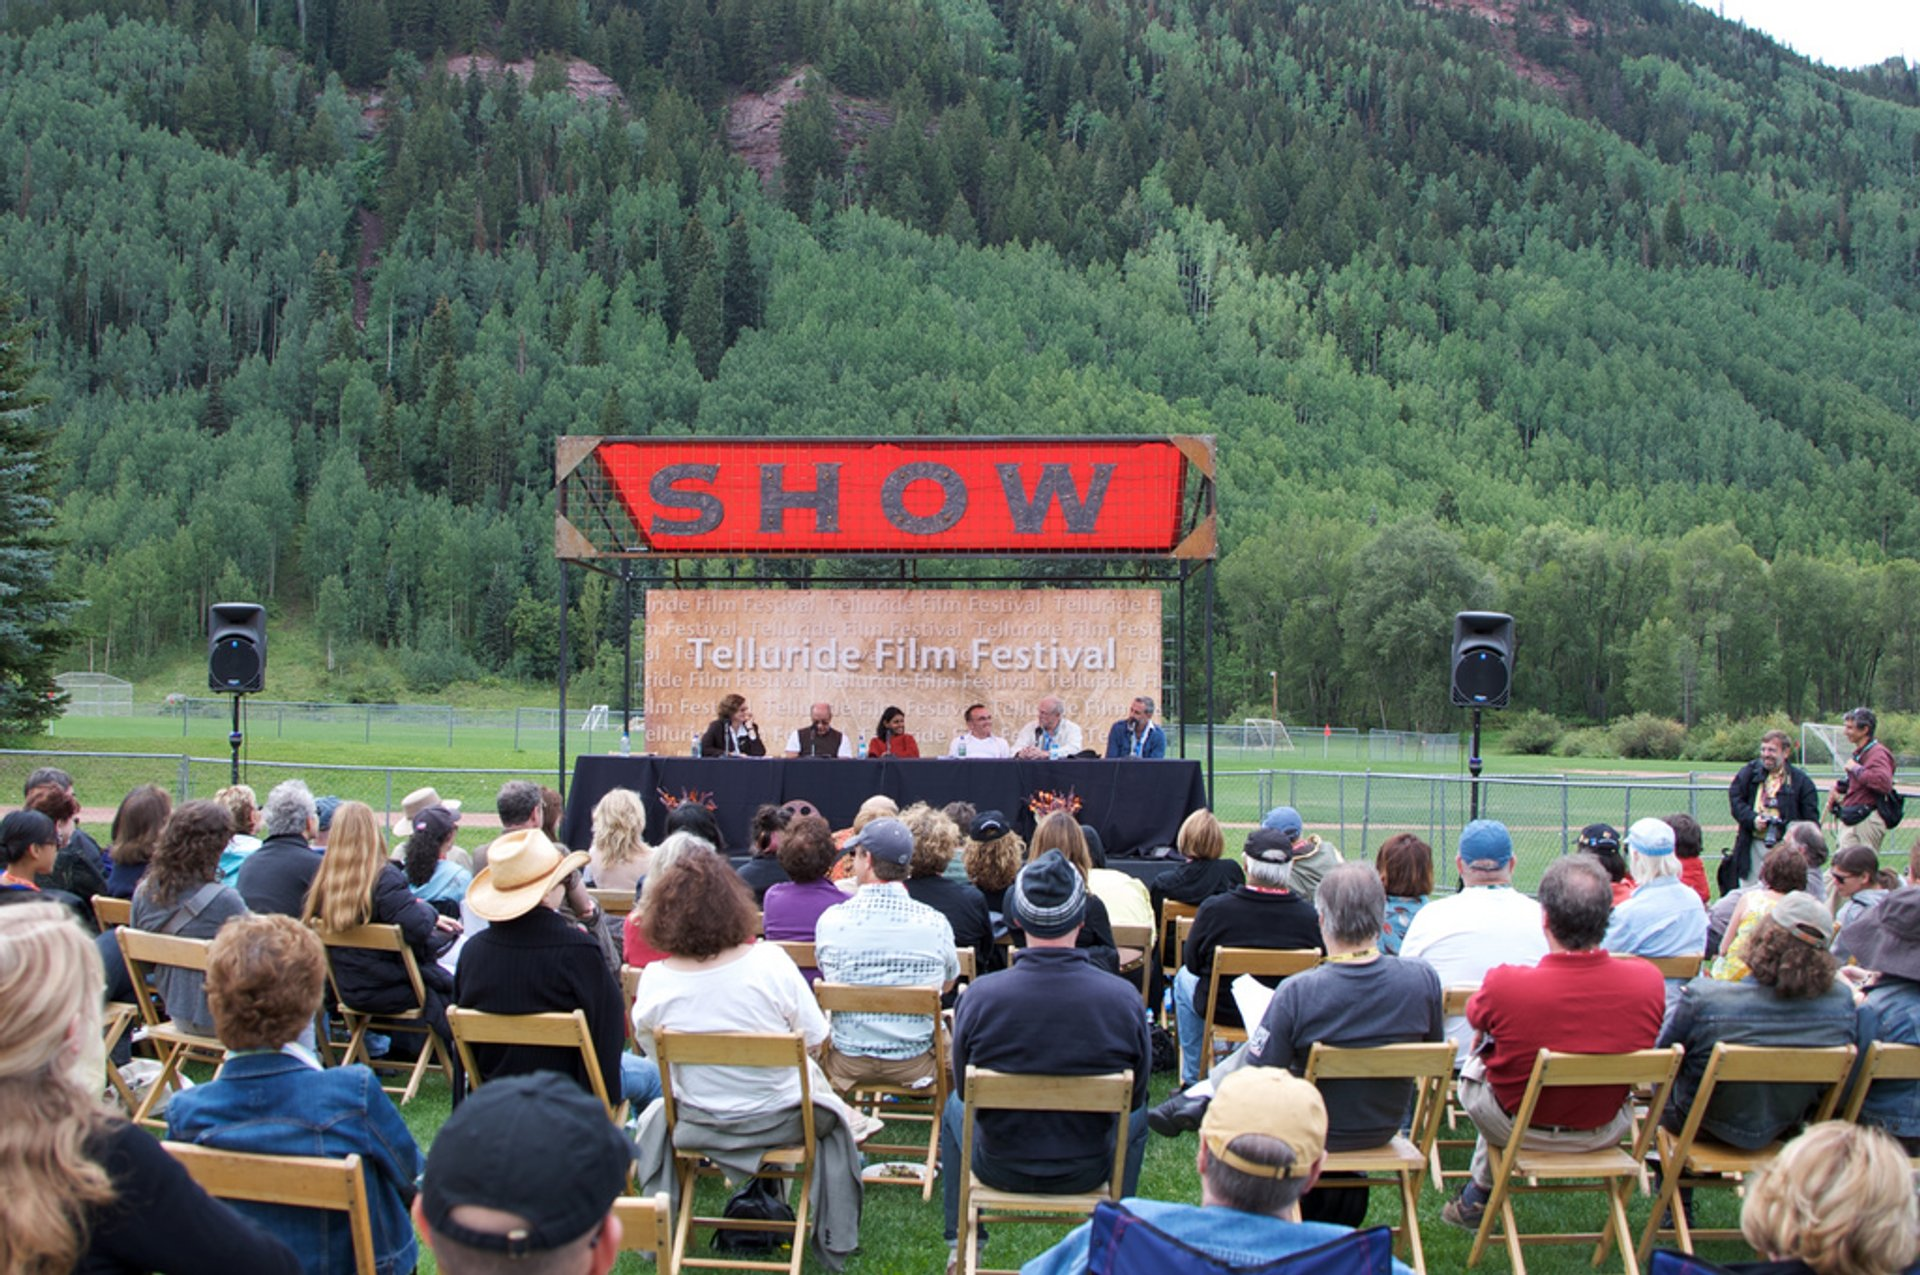 Telluride Film Festival in Colorado - Best Season 2020